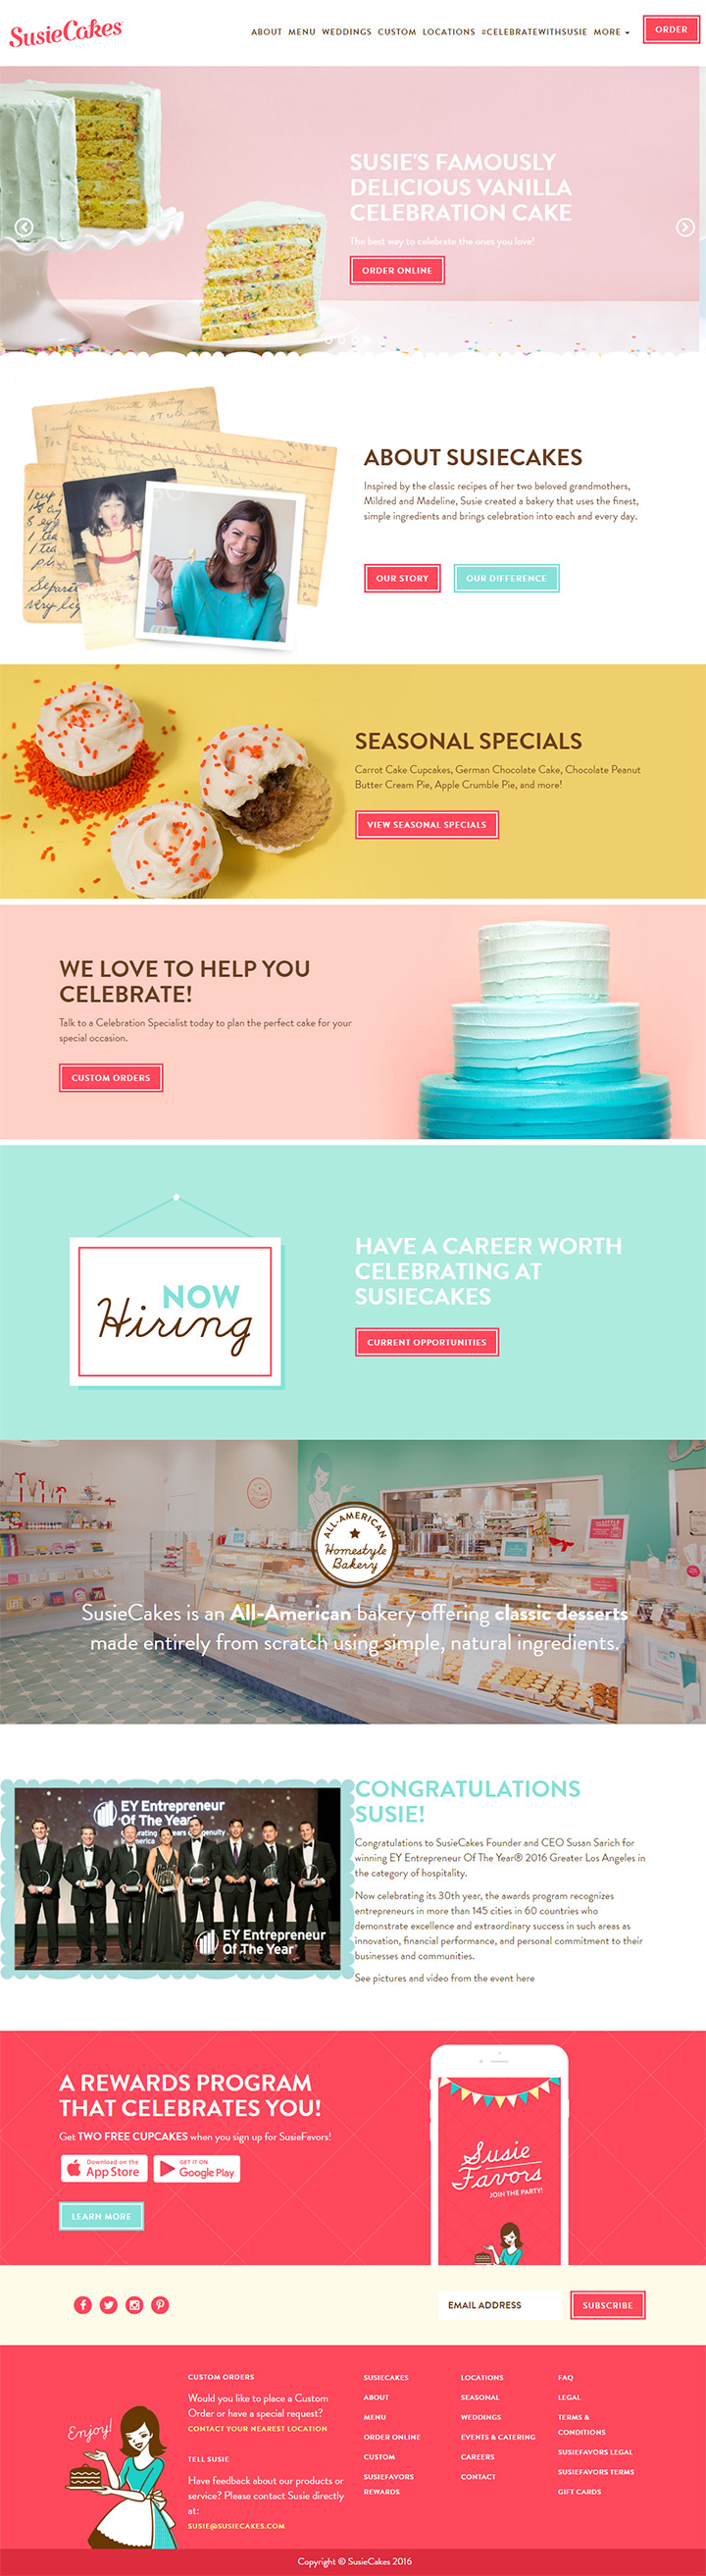 susie cakes website